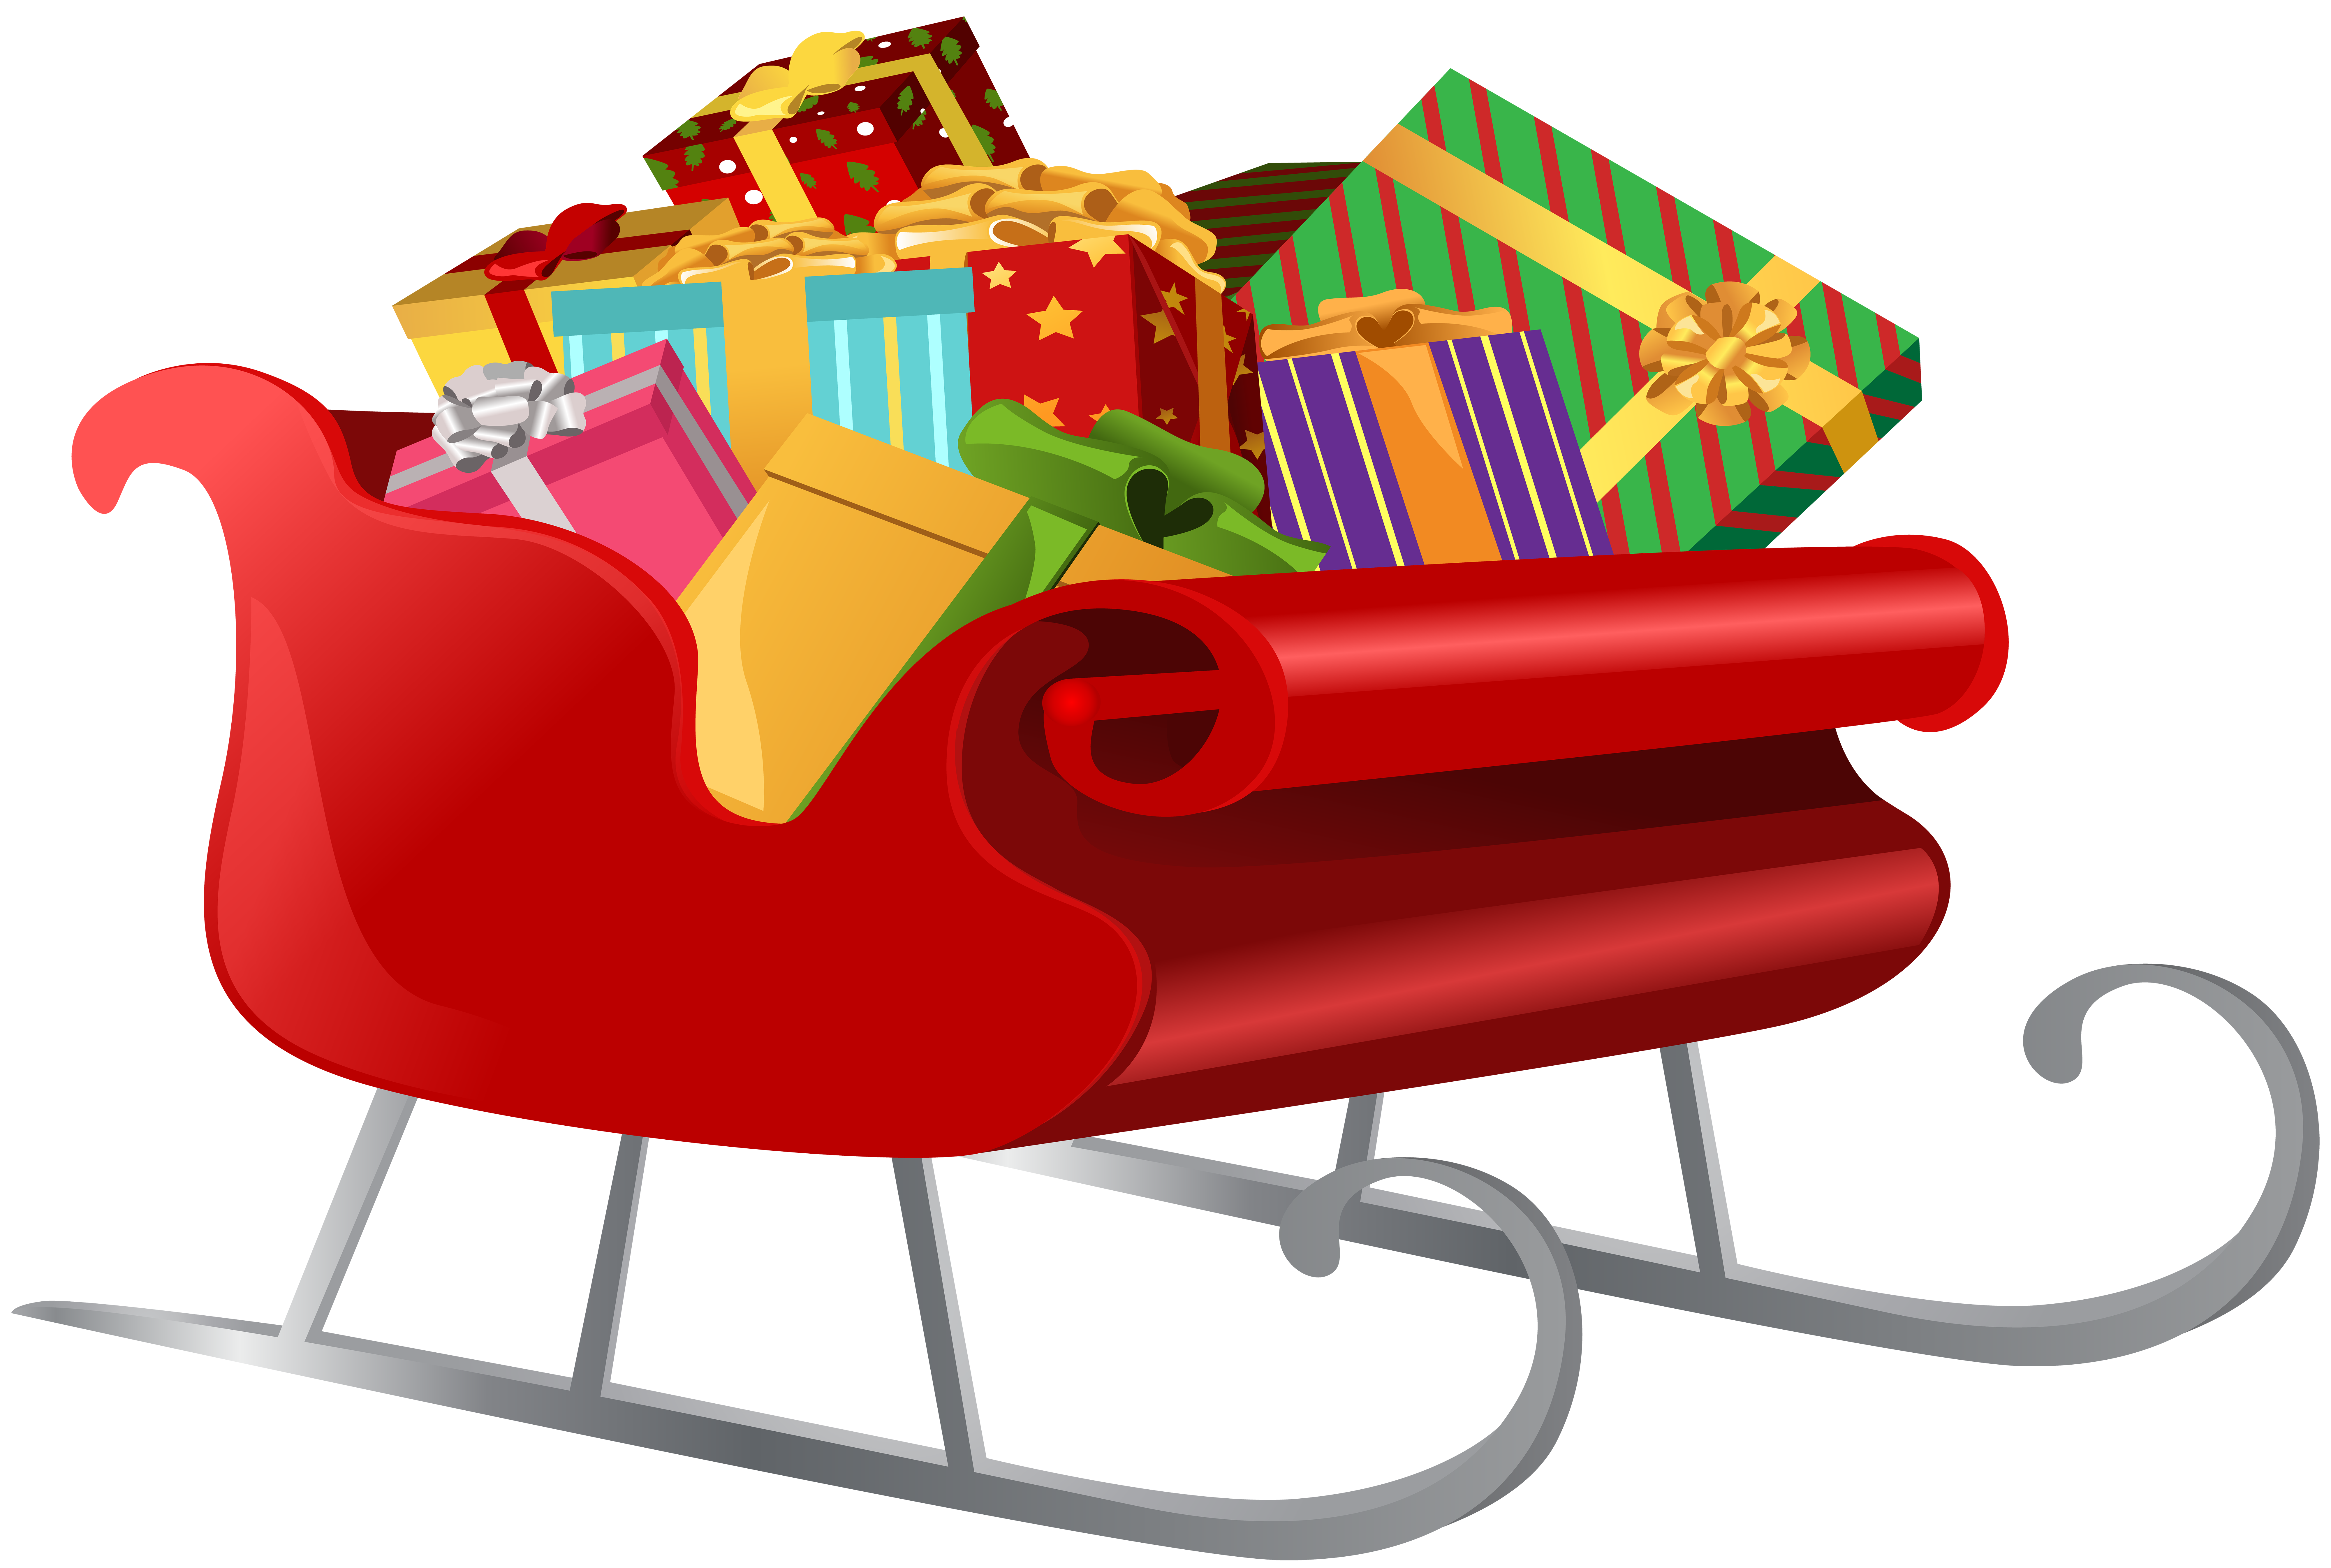 Christmas sleighs clipart clipart royalty free library Santa Sleigh with Gifts PNG Clip Art Image | Gallery Yopriceville ... clipart royalty free library